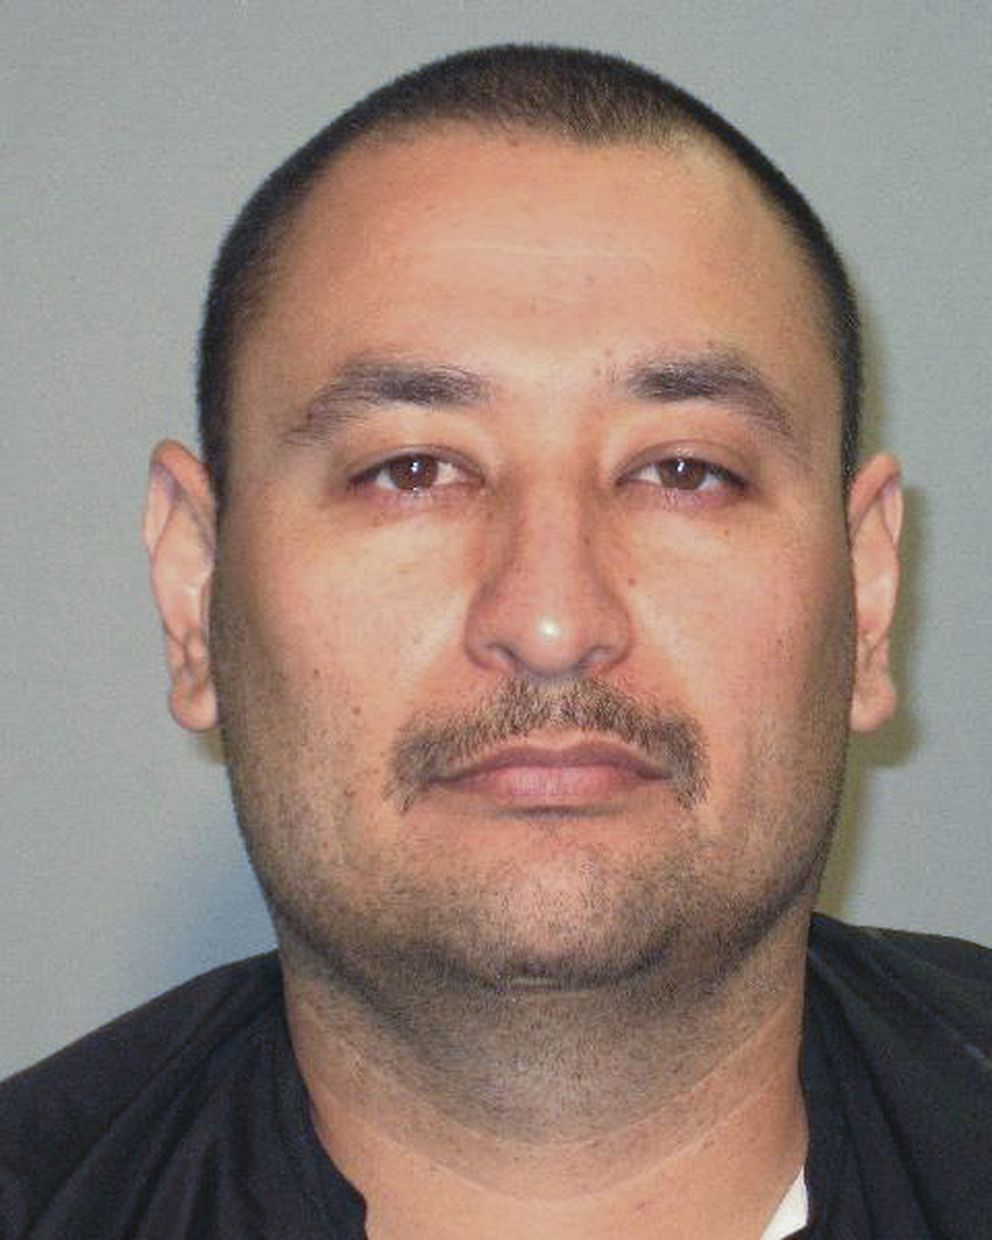 In an undated handout photo, Johnny Acosta, a Customs and Border Protection officer in Douglas, Ariz., was sentenced in February 2016 to eight years in prison for bribery and drug smuggling. Over the last decade, nearly 200 Homeland Security workers accepted bribes to let immigrants and drugs into the country, a New York Times review found. (Handout via The New York Times) — EDITORIAL USE ONLY